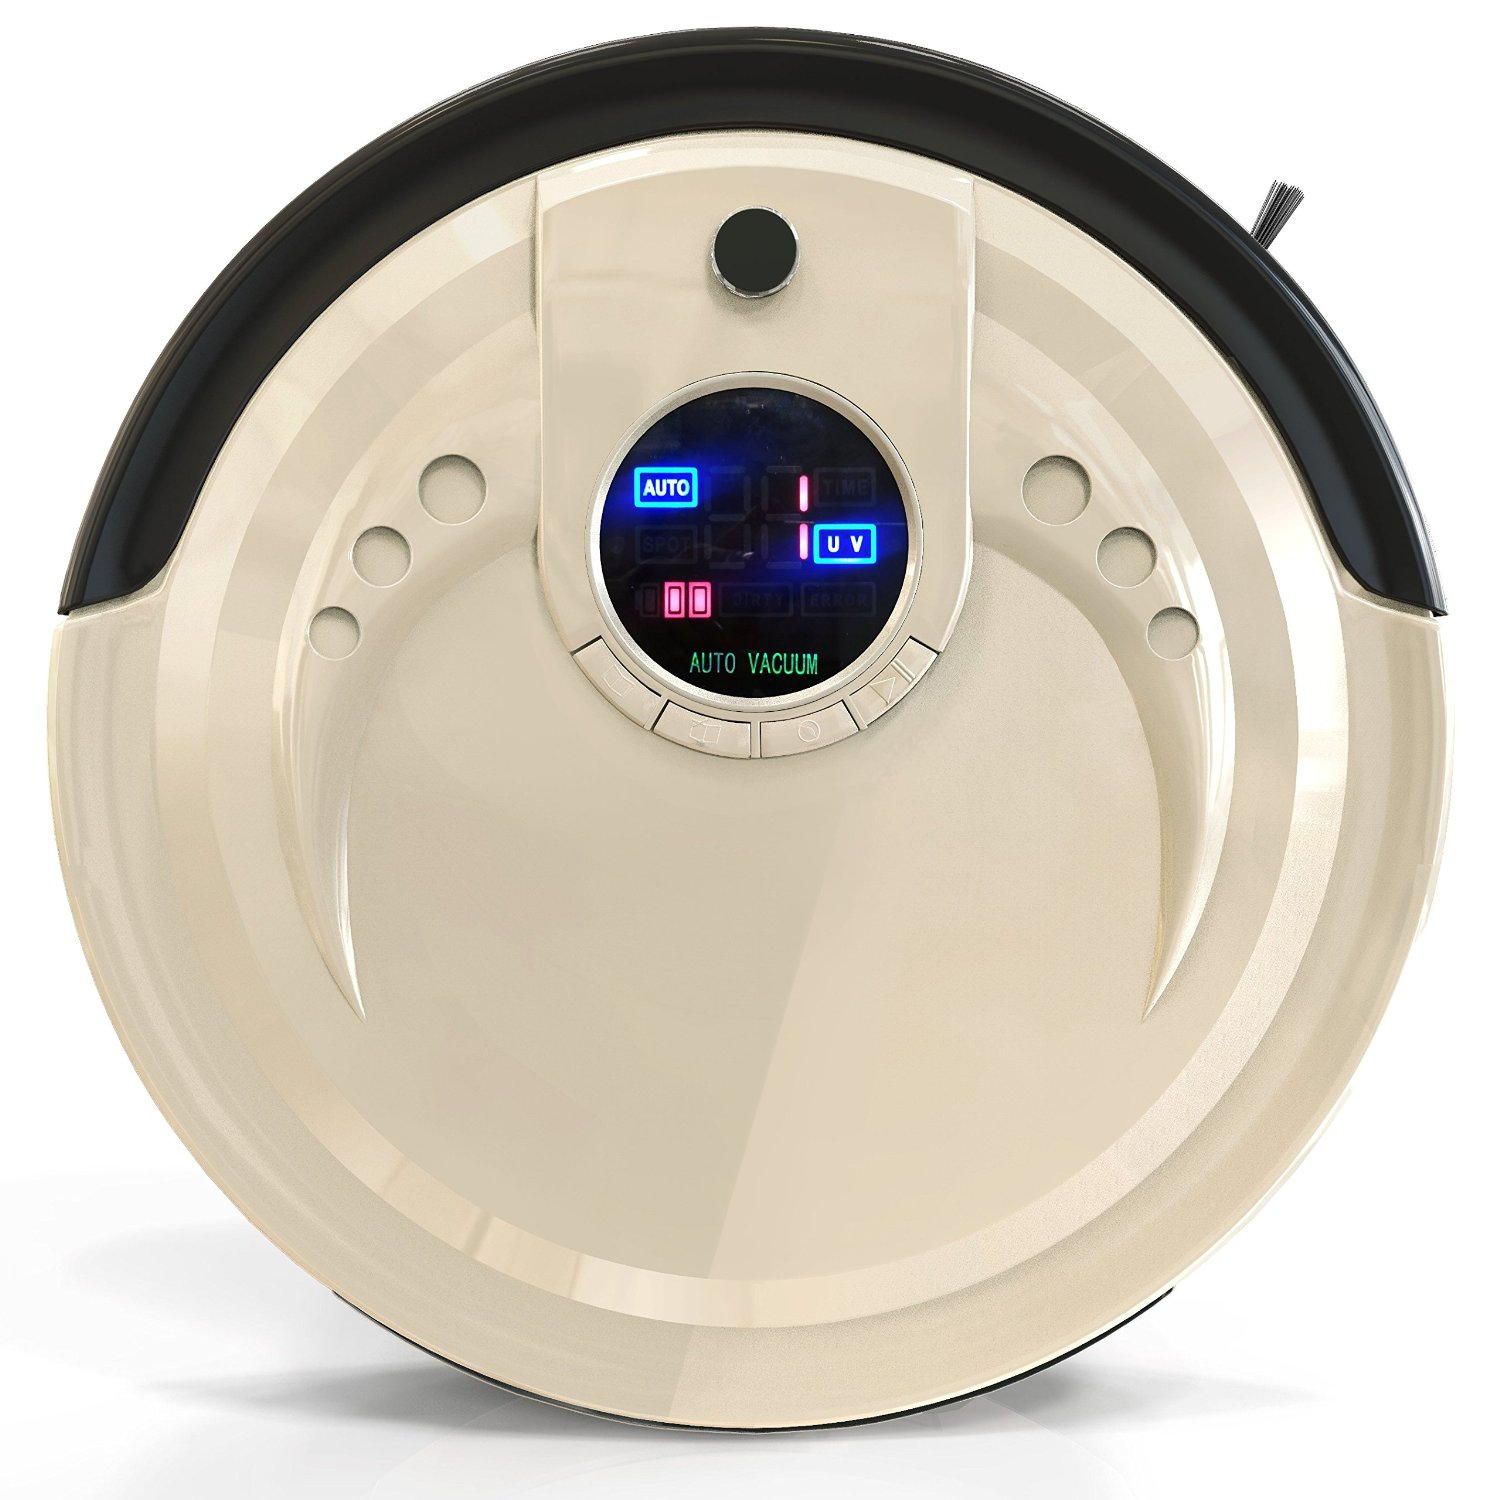 Top 10 Best Robotic Vacuums 2019 Cleaning Mopping Robot